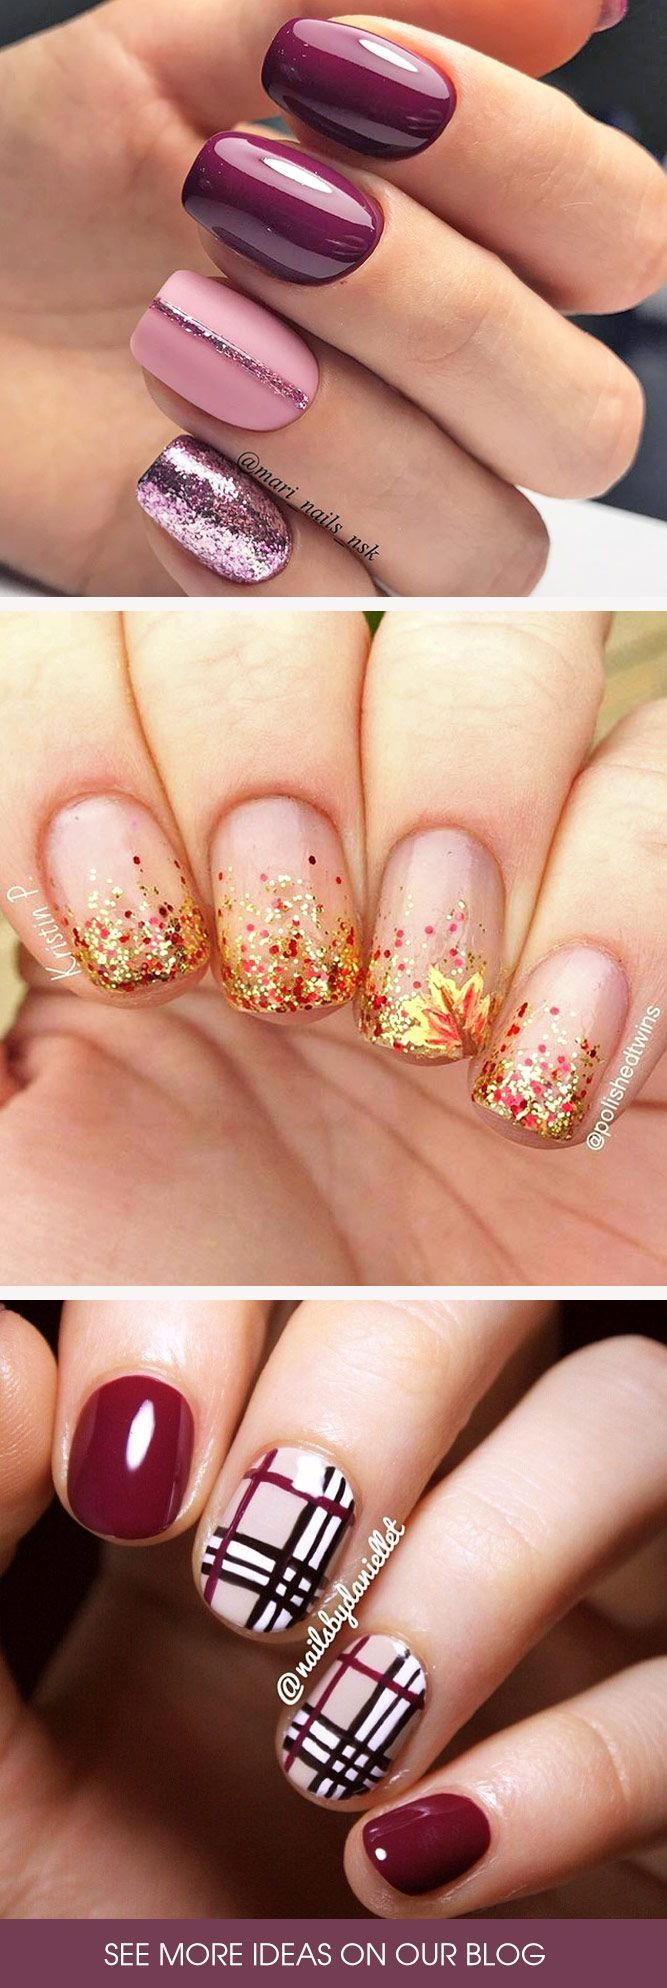 trendiest fall nail designs require some practice to look perfect. However, if you are patient, you can easily make your nails look amazing.The trendiest fall nail designs require some practice to look perfect. However, if you are patient, you can easily make your nails look amazing.